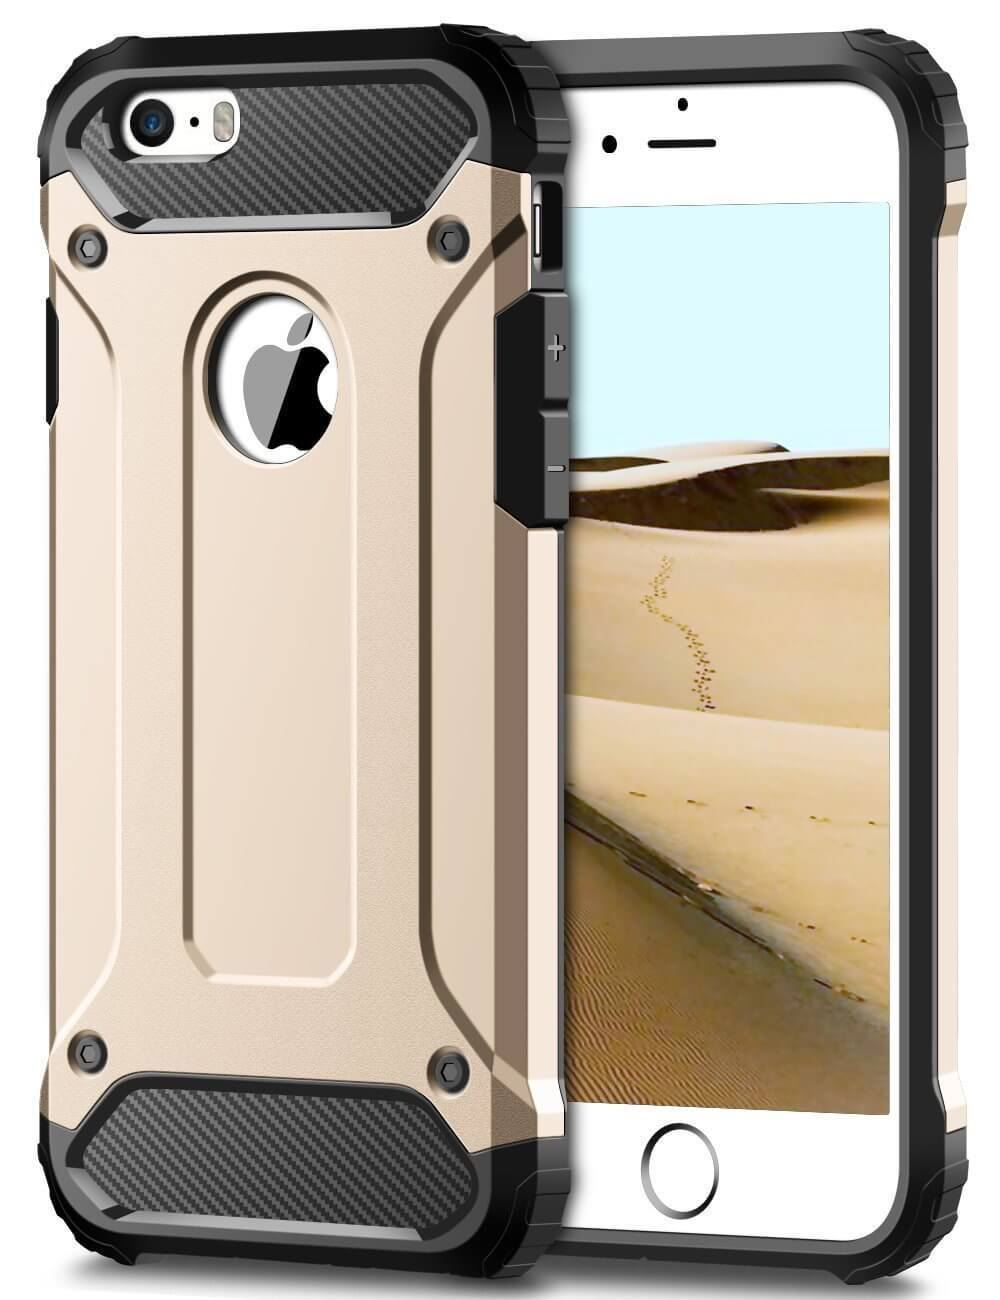 Hybrid-Armor-Shockproof-Rugged-Bumper-Case-For-Apple-iPhone-10-X-8-7-Plus-6s-5s miniature 56